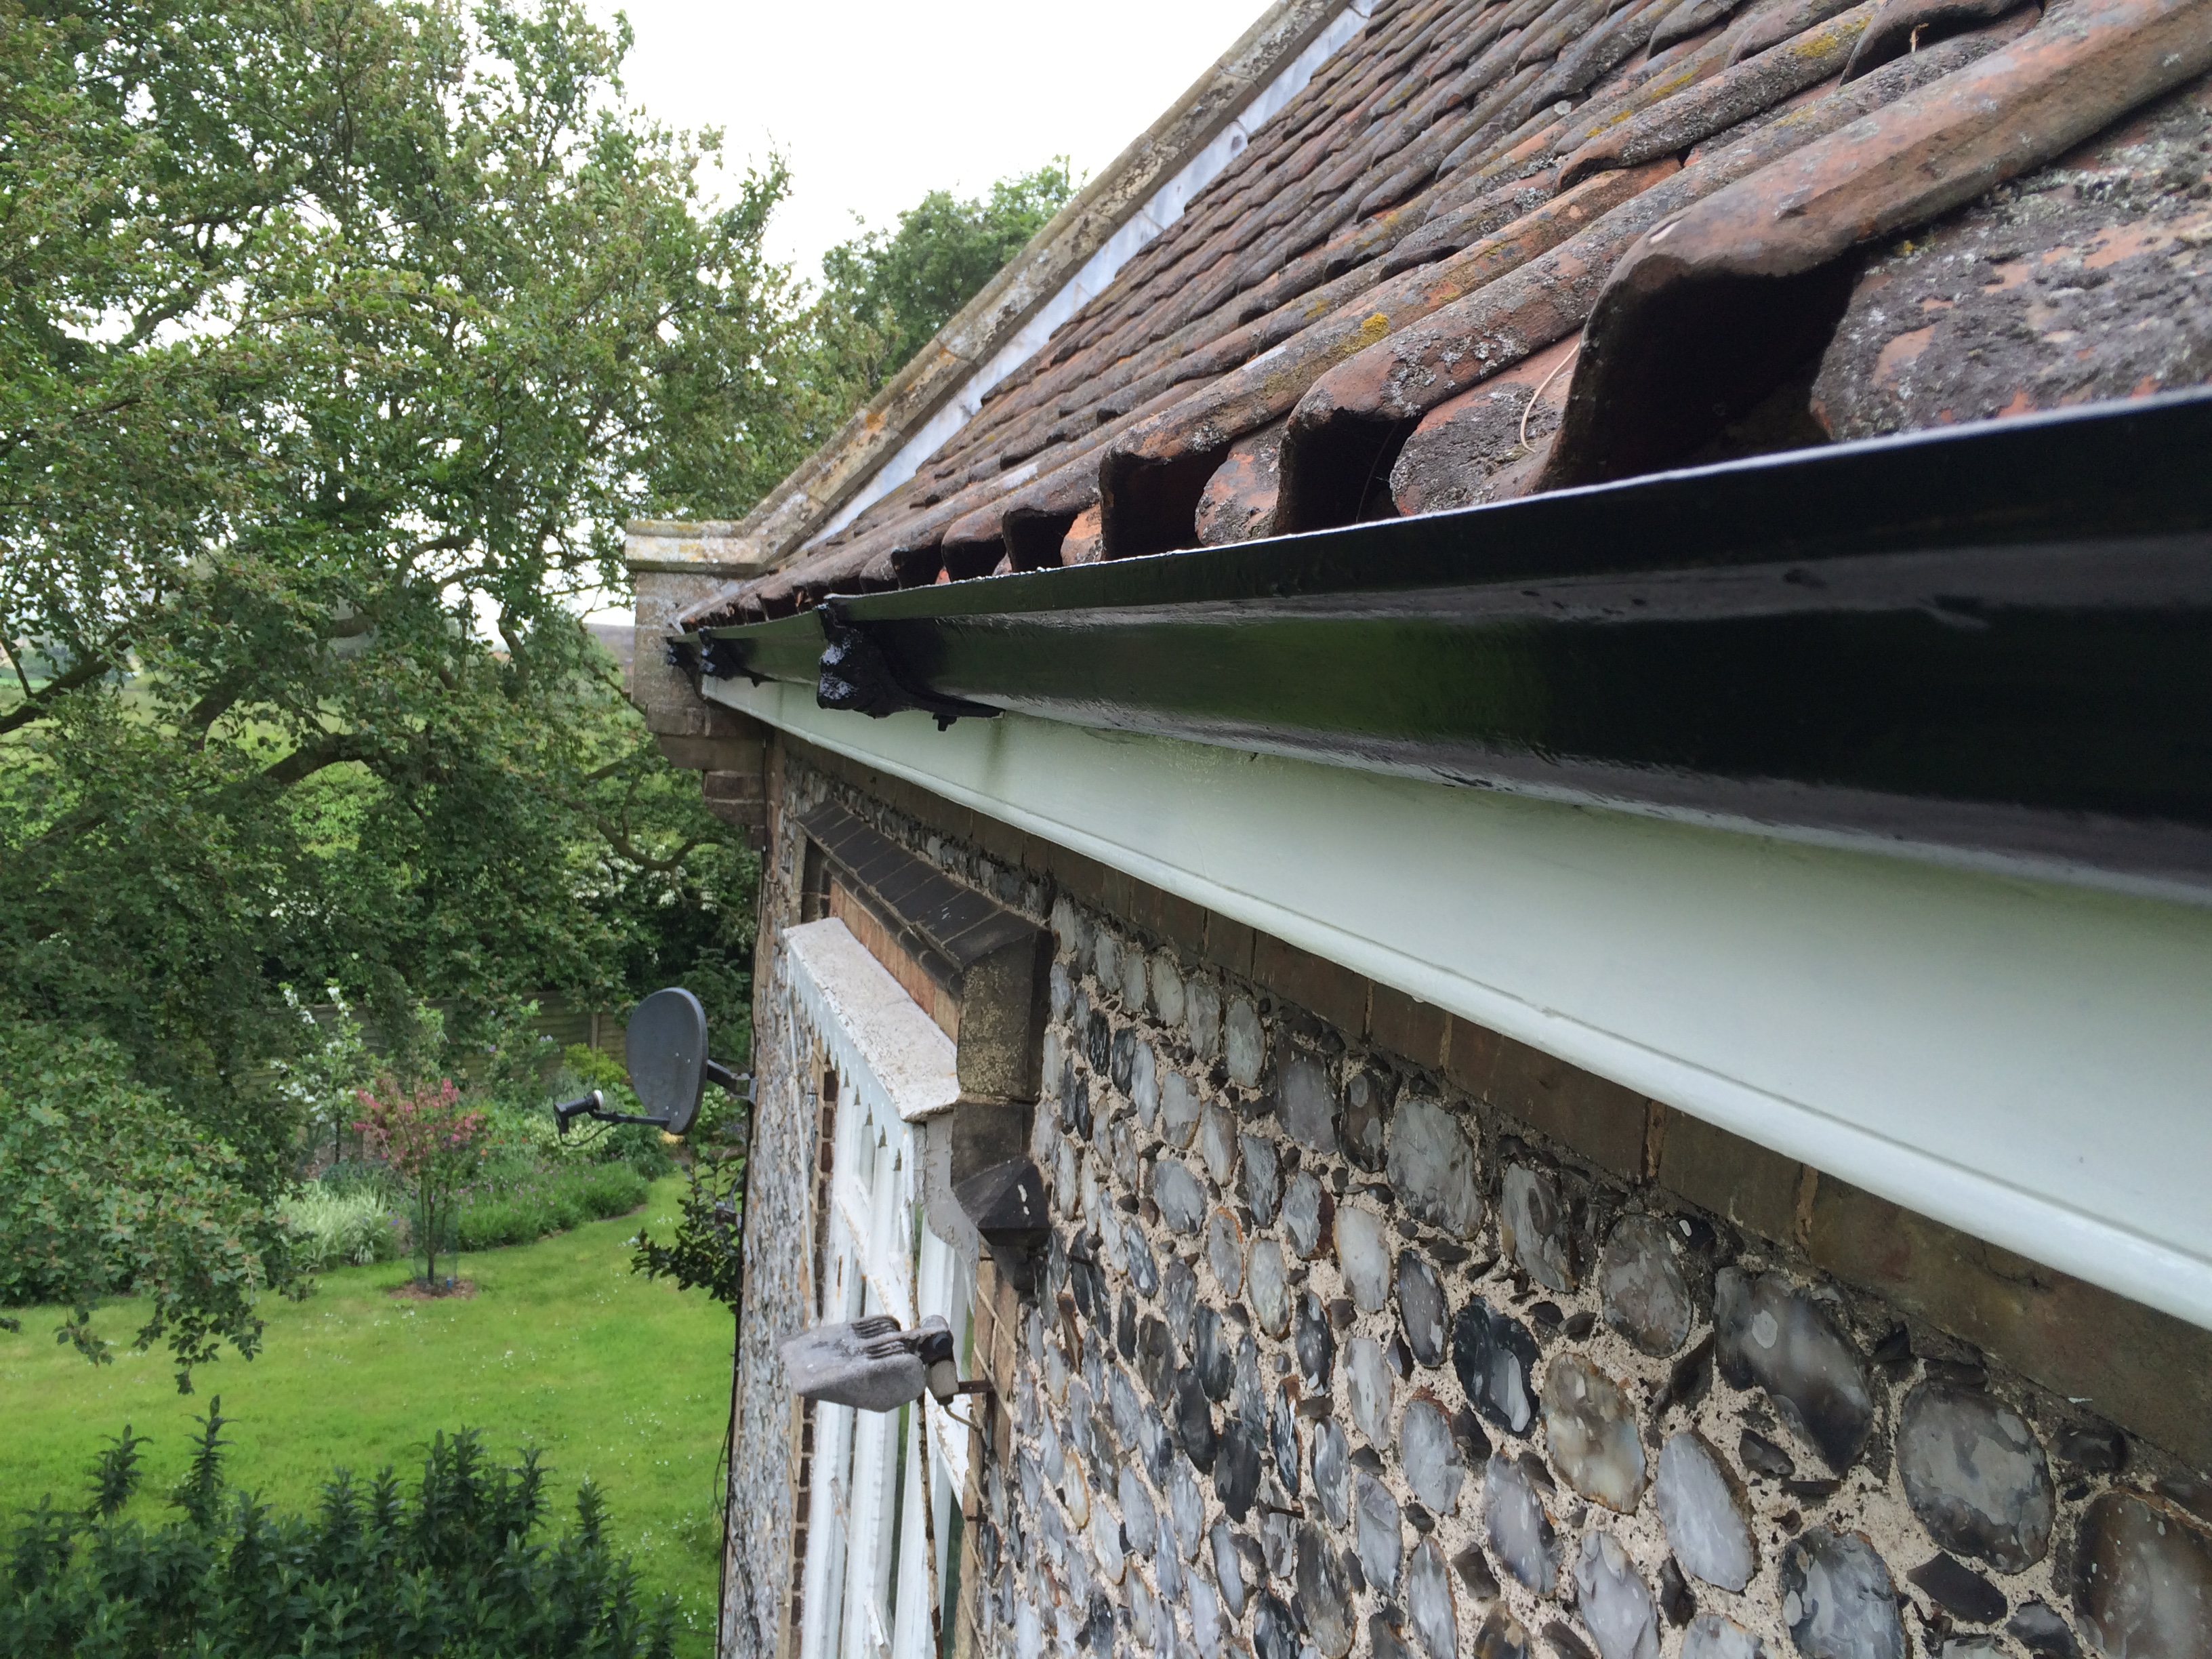 Cast Iron Gutters - Refinishing